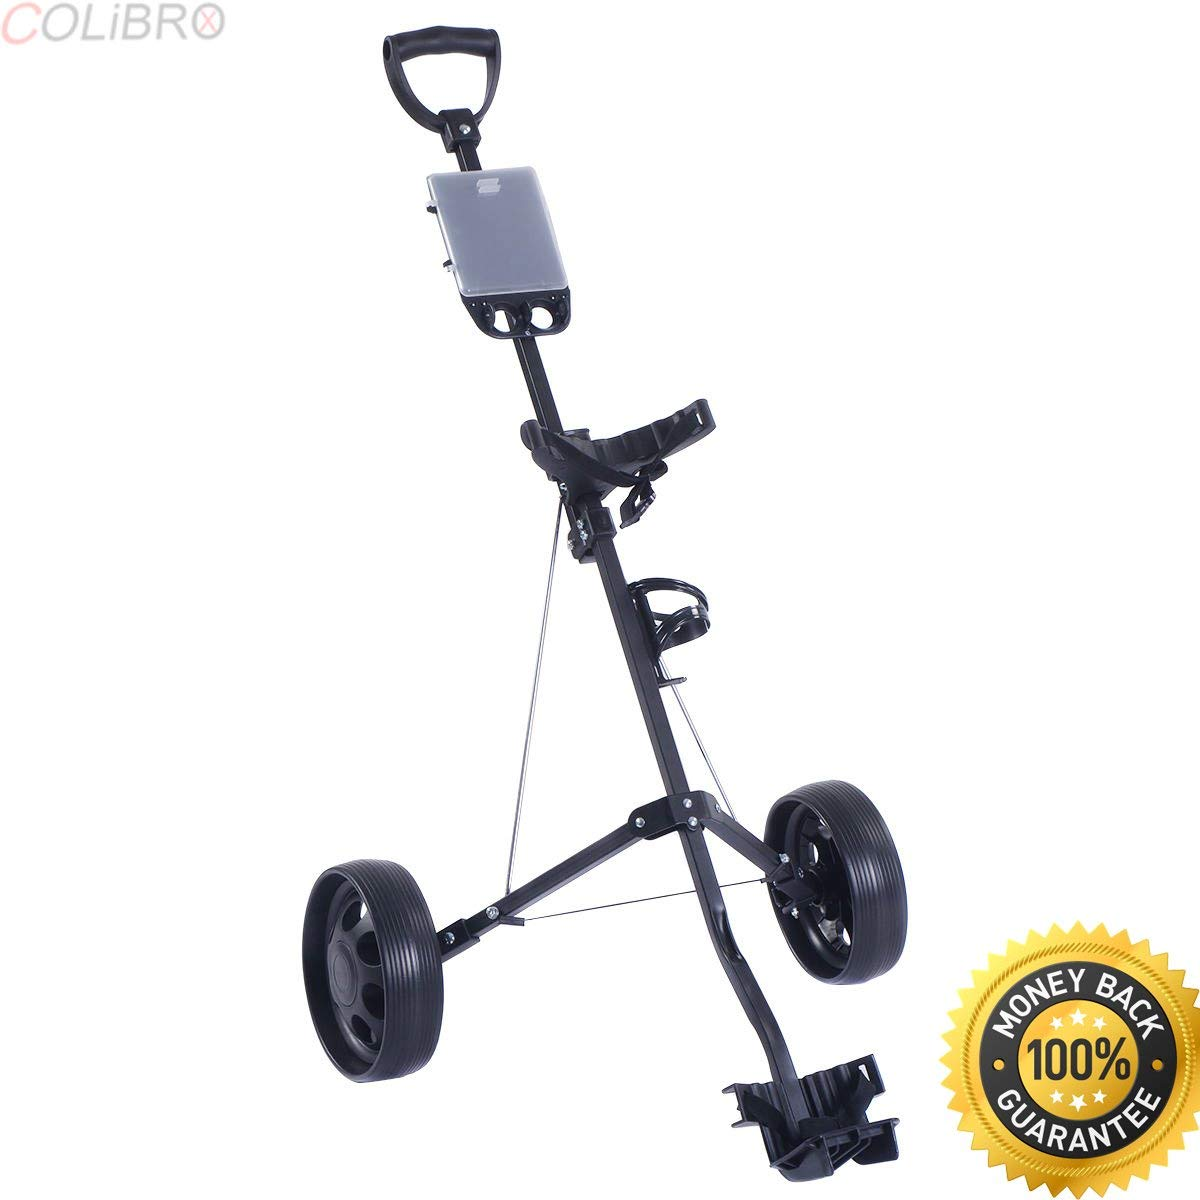 COLIBROX--New Foldable 2 Wheel Push Pull Golf Cart /Cup Holder Trolley Swivel Steel Light. pull carts walmart. costway golf cart. best golf pull carts for sale. golf pull carts amazon.